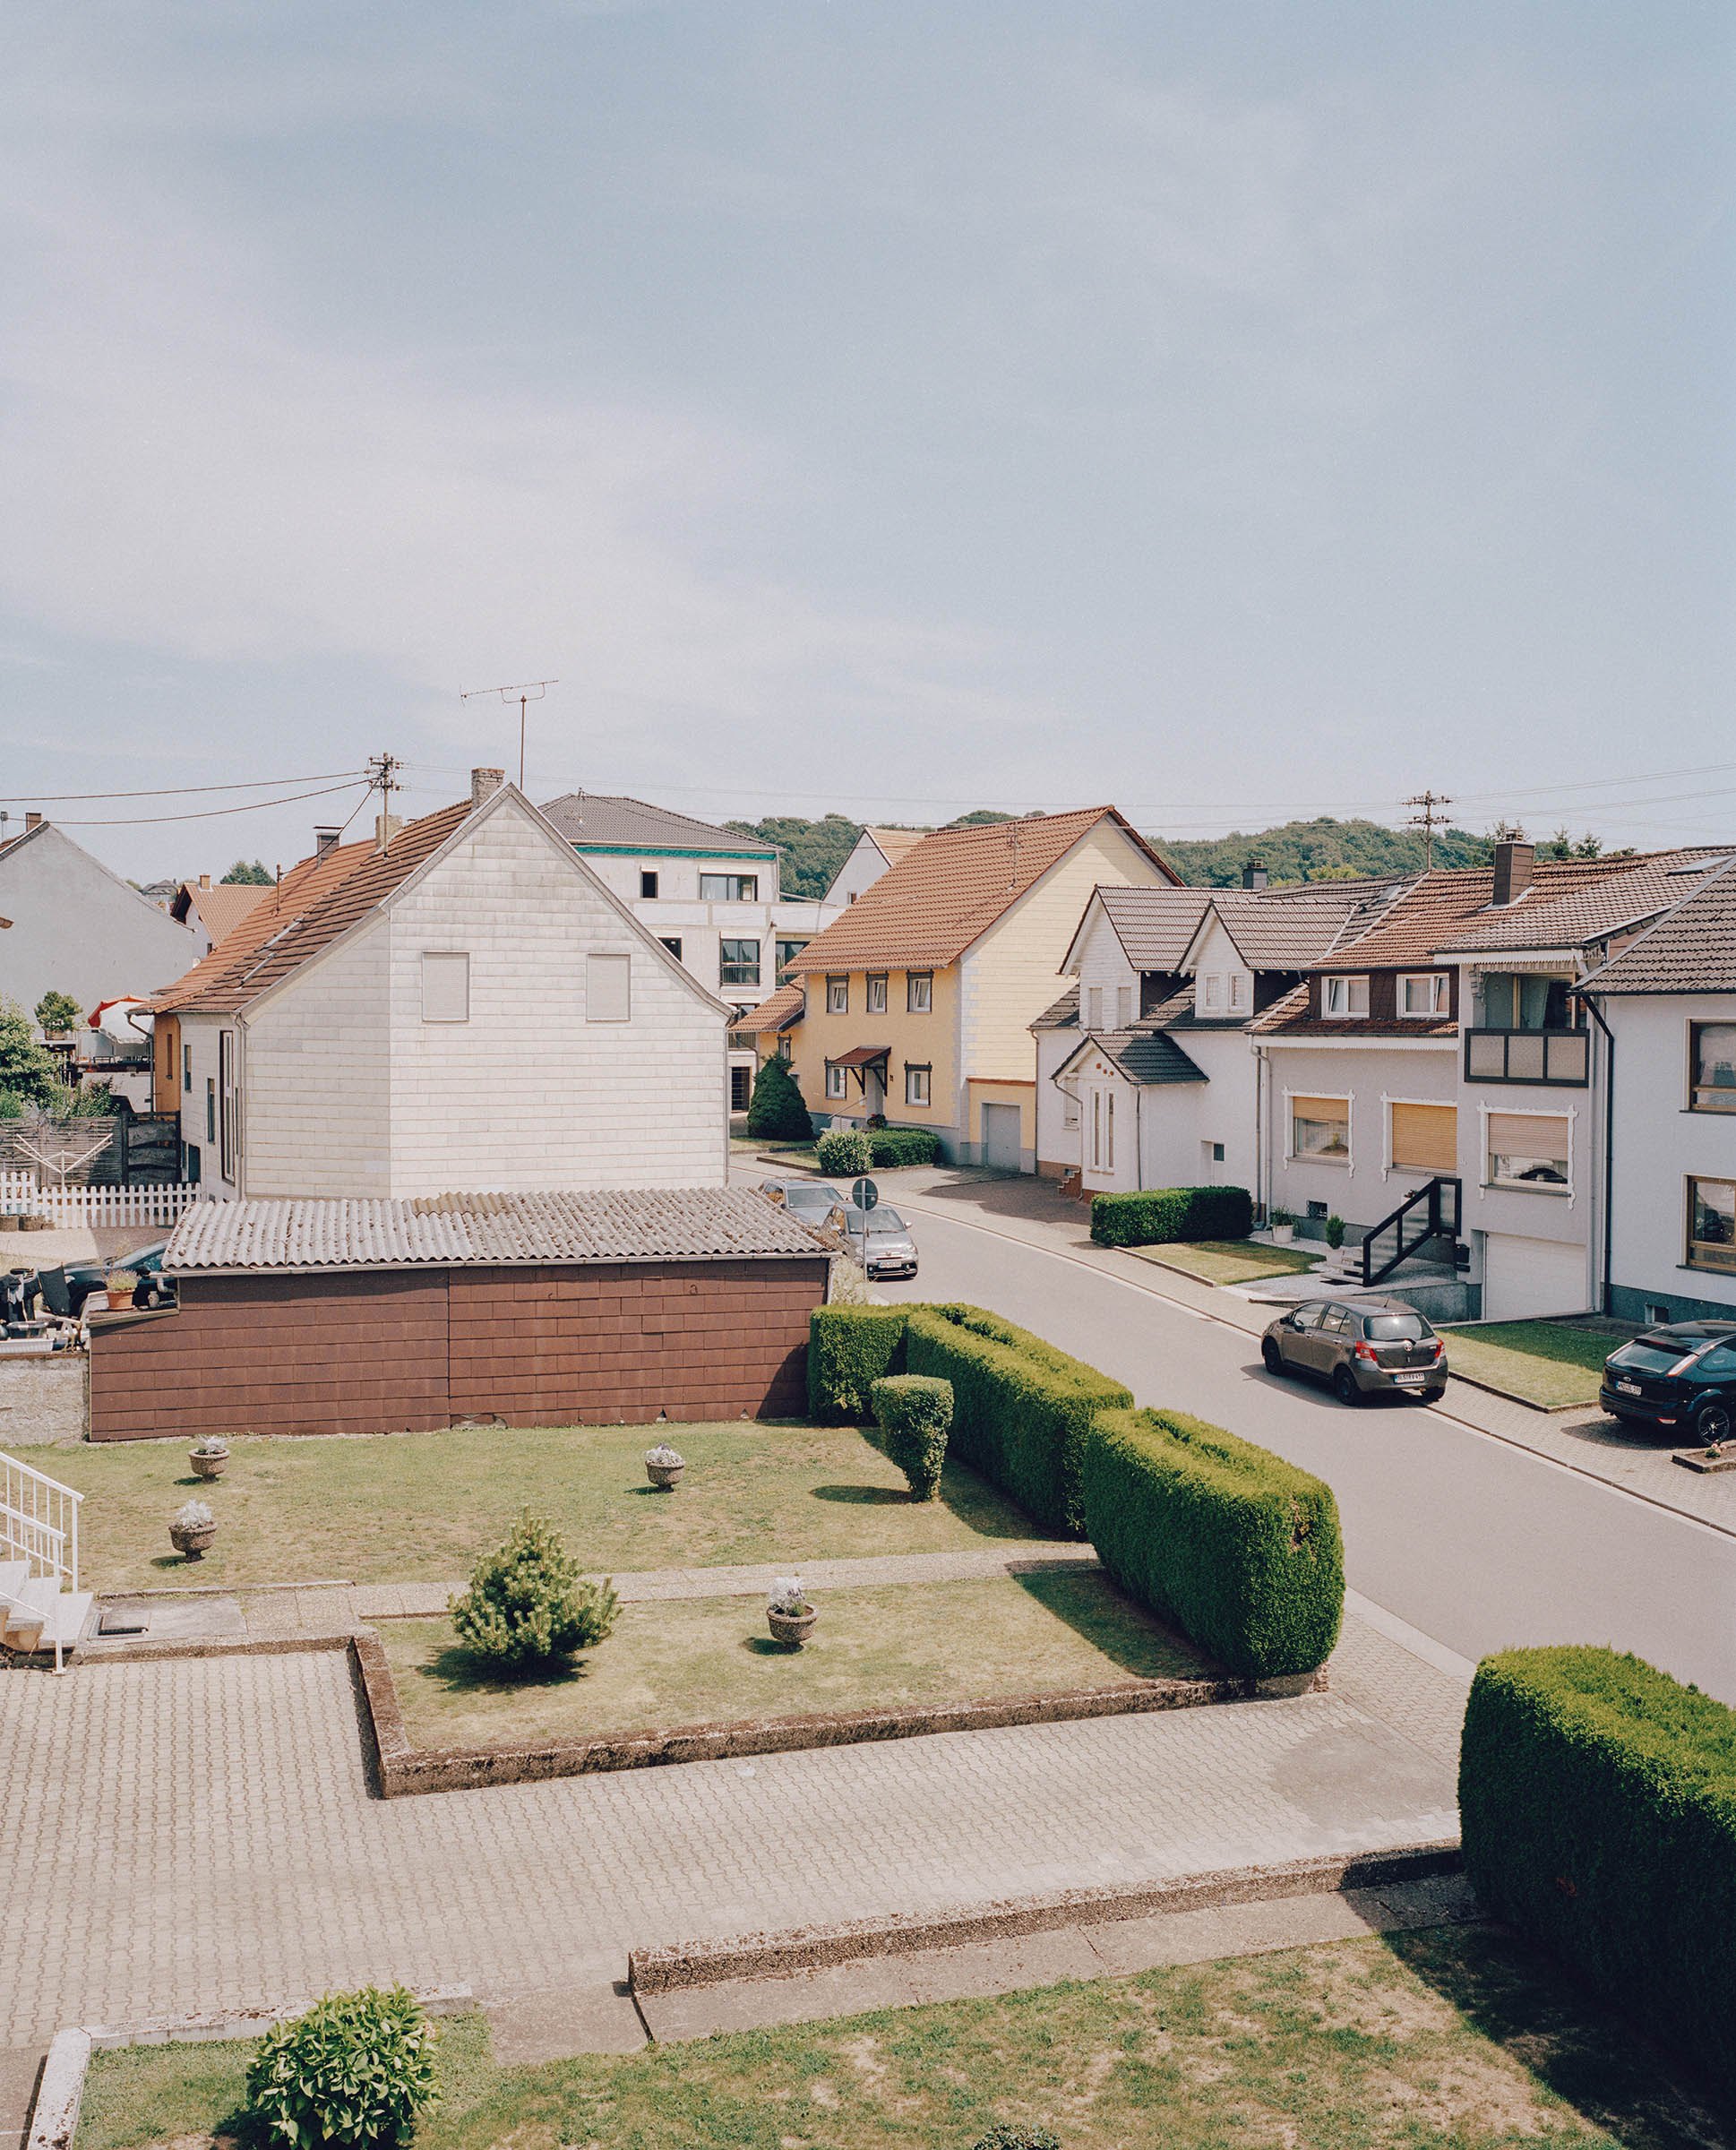 The view from the living room window of Walid Khalil Murad's house, overlooking a street in Theley village in Saarland, southern Germany on July 25, 2019.